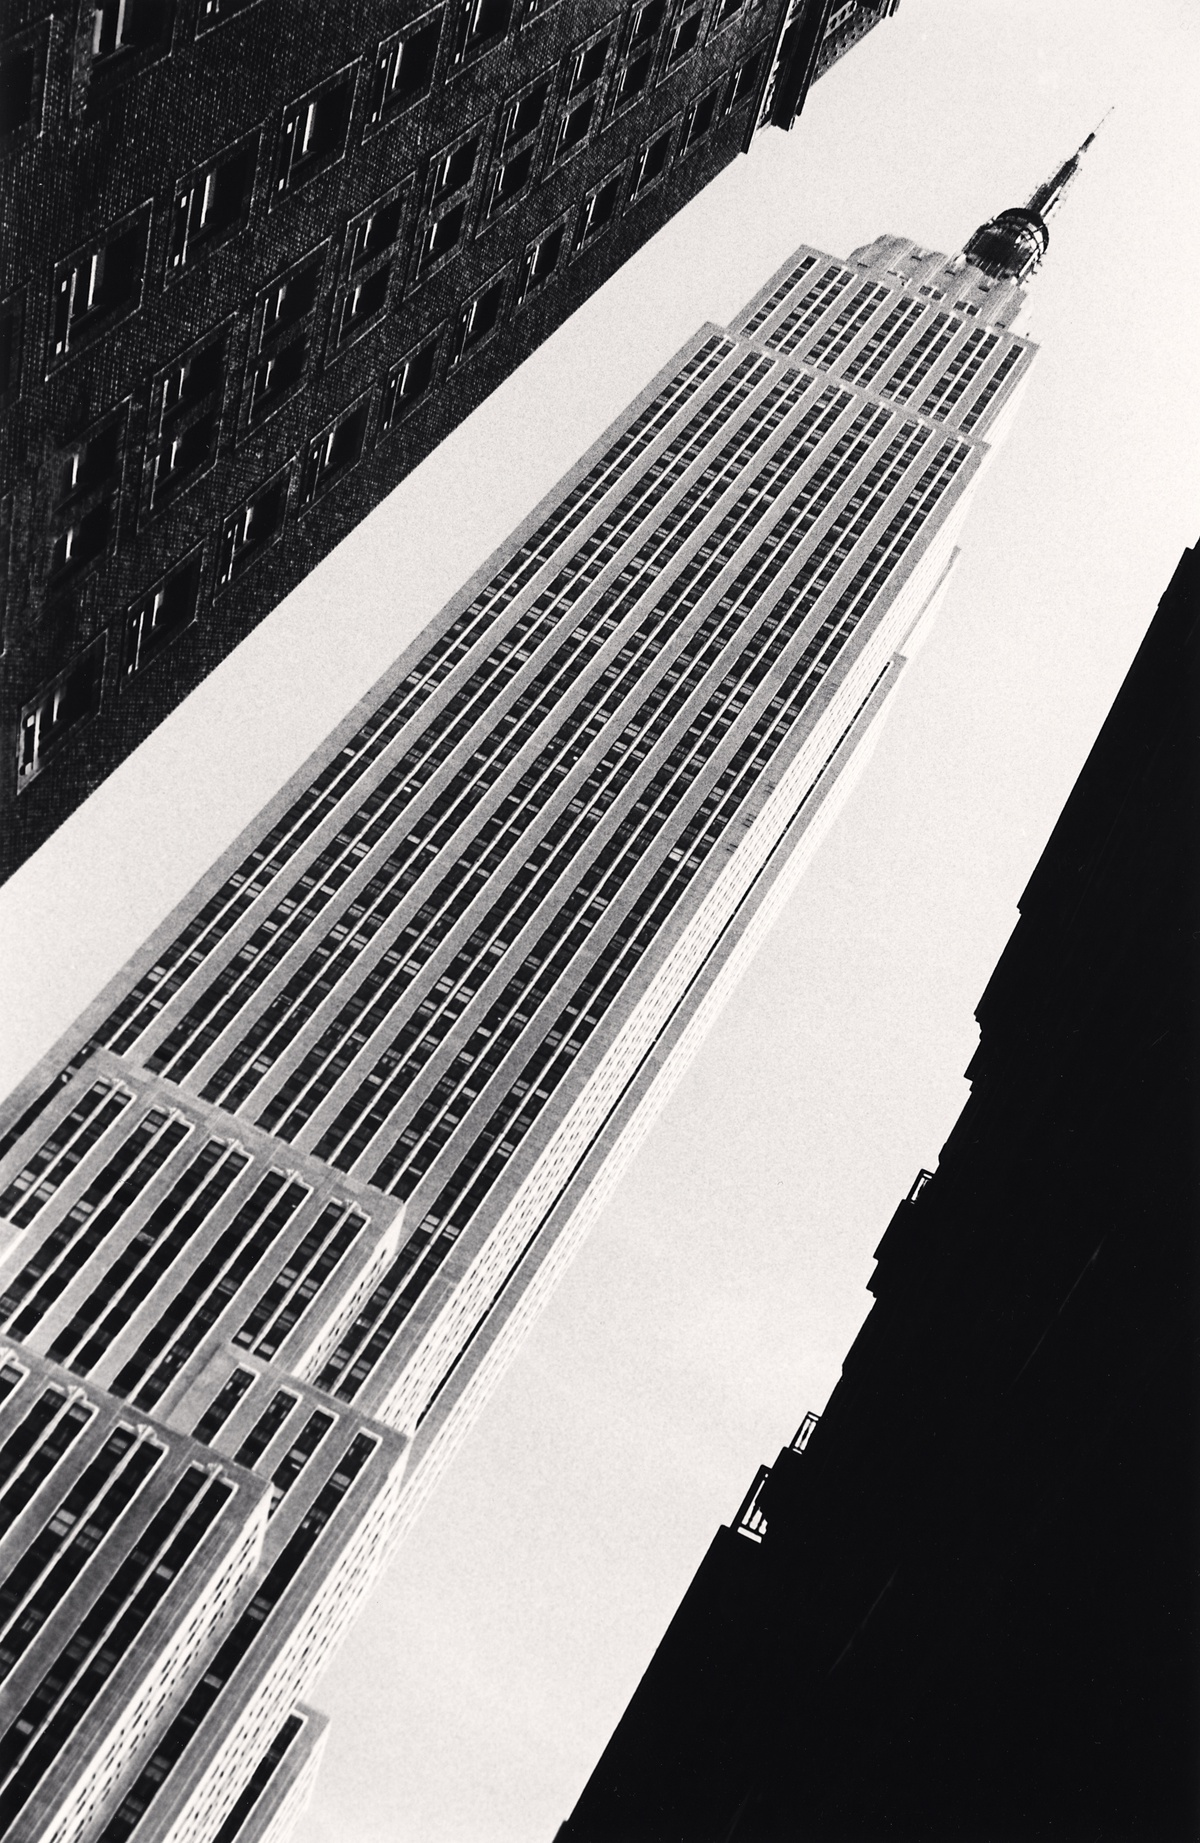 Michael Kenna Empire State Building, Study 1, New York, New York, USA 1978 Sepia Toned Silver Gelatin Print From An Edition Of 45 8 x 10 Inches